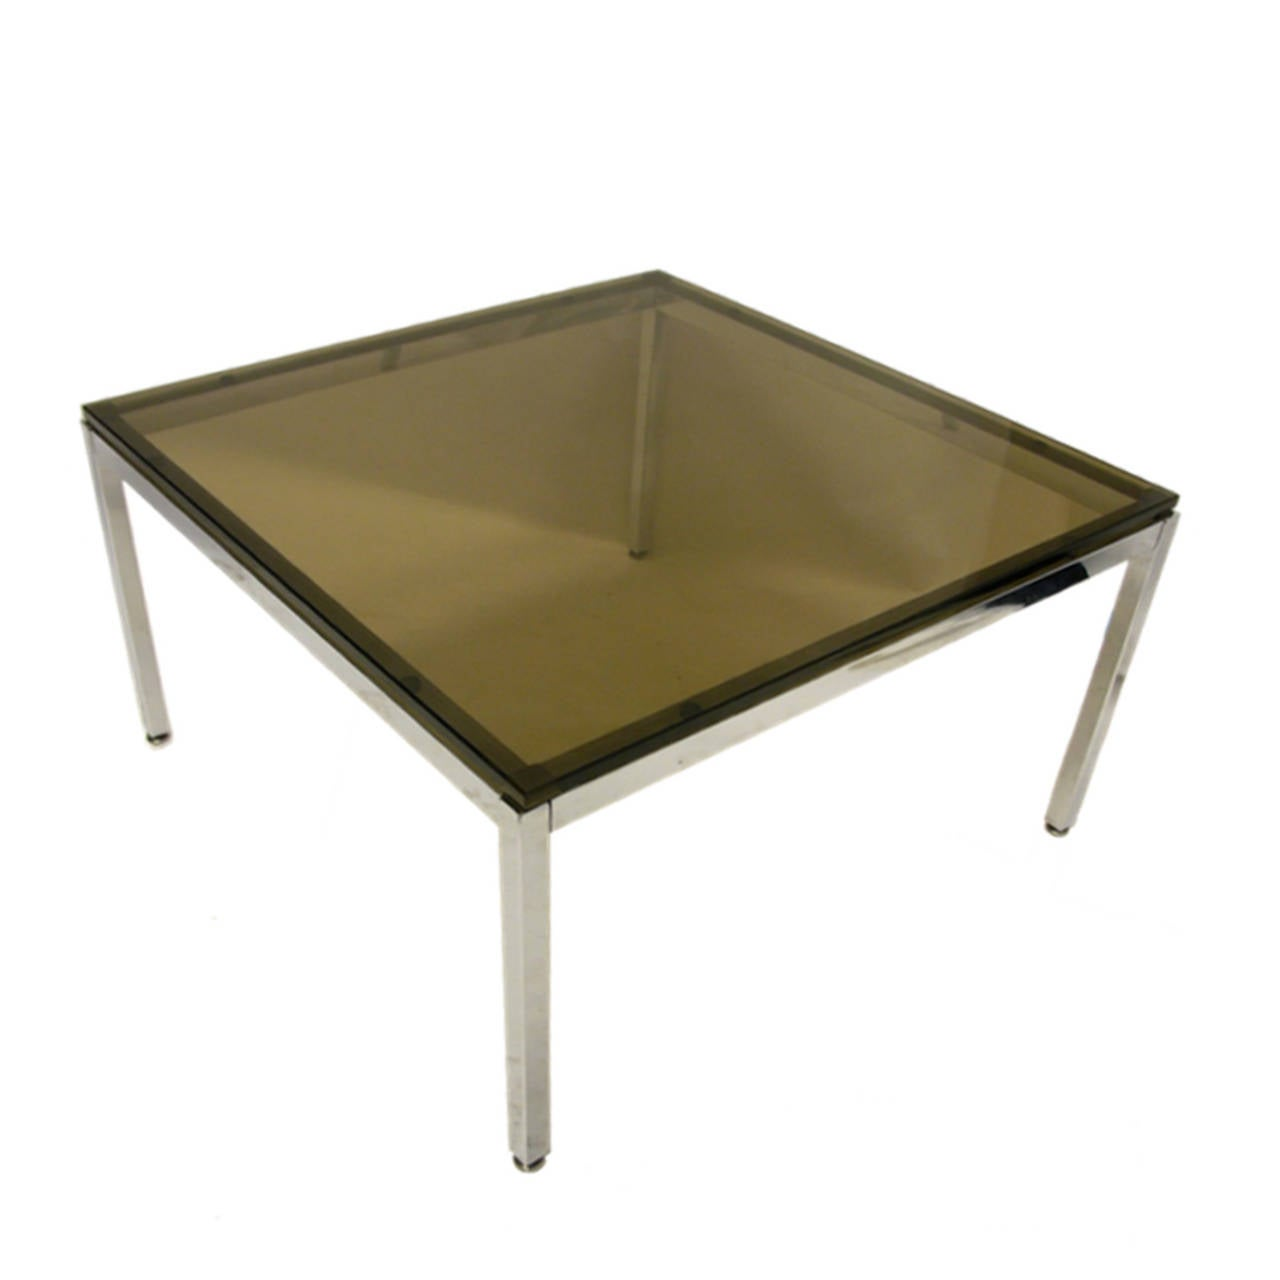 Pair Of Sleek Smoked Glass And Chrome End Tables By Steelcase At 1stdibs